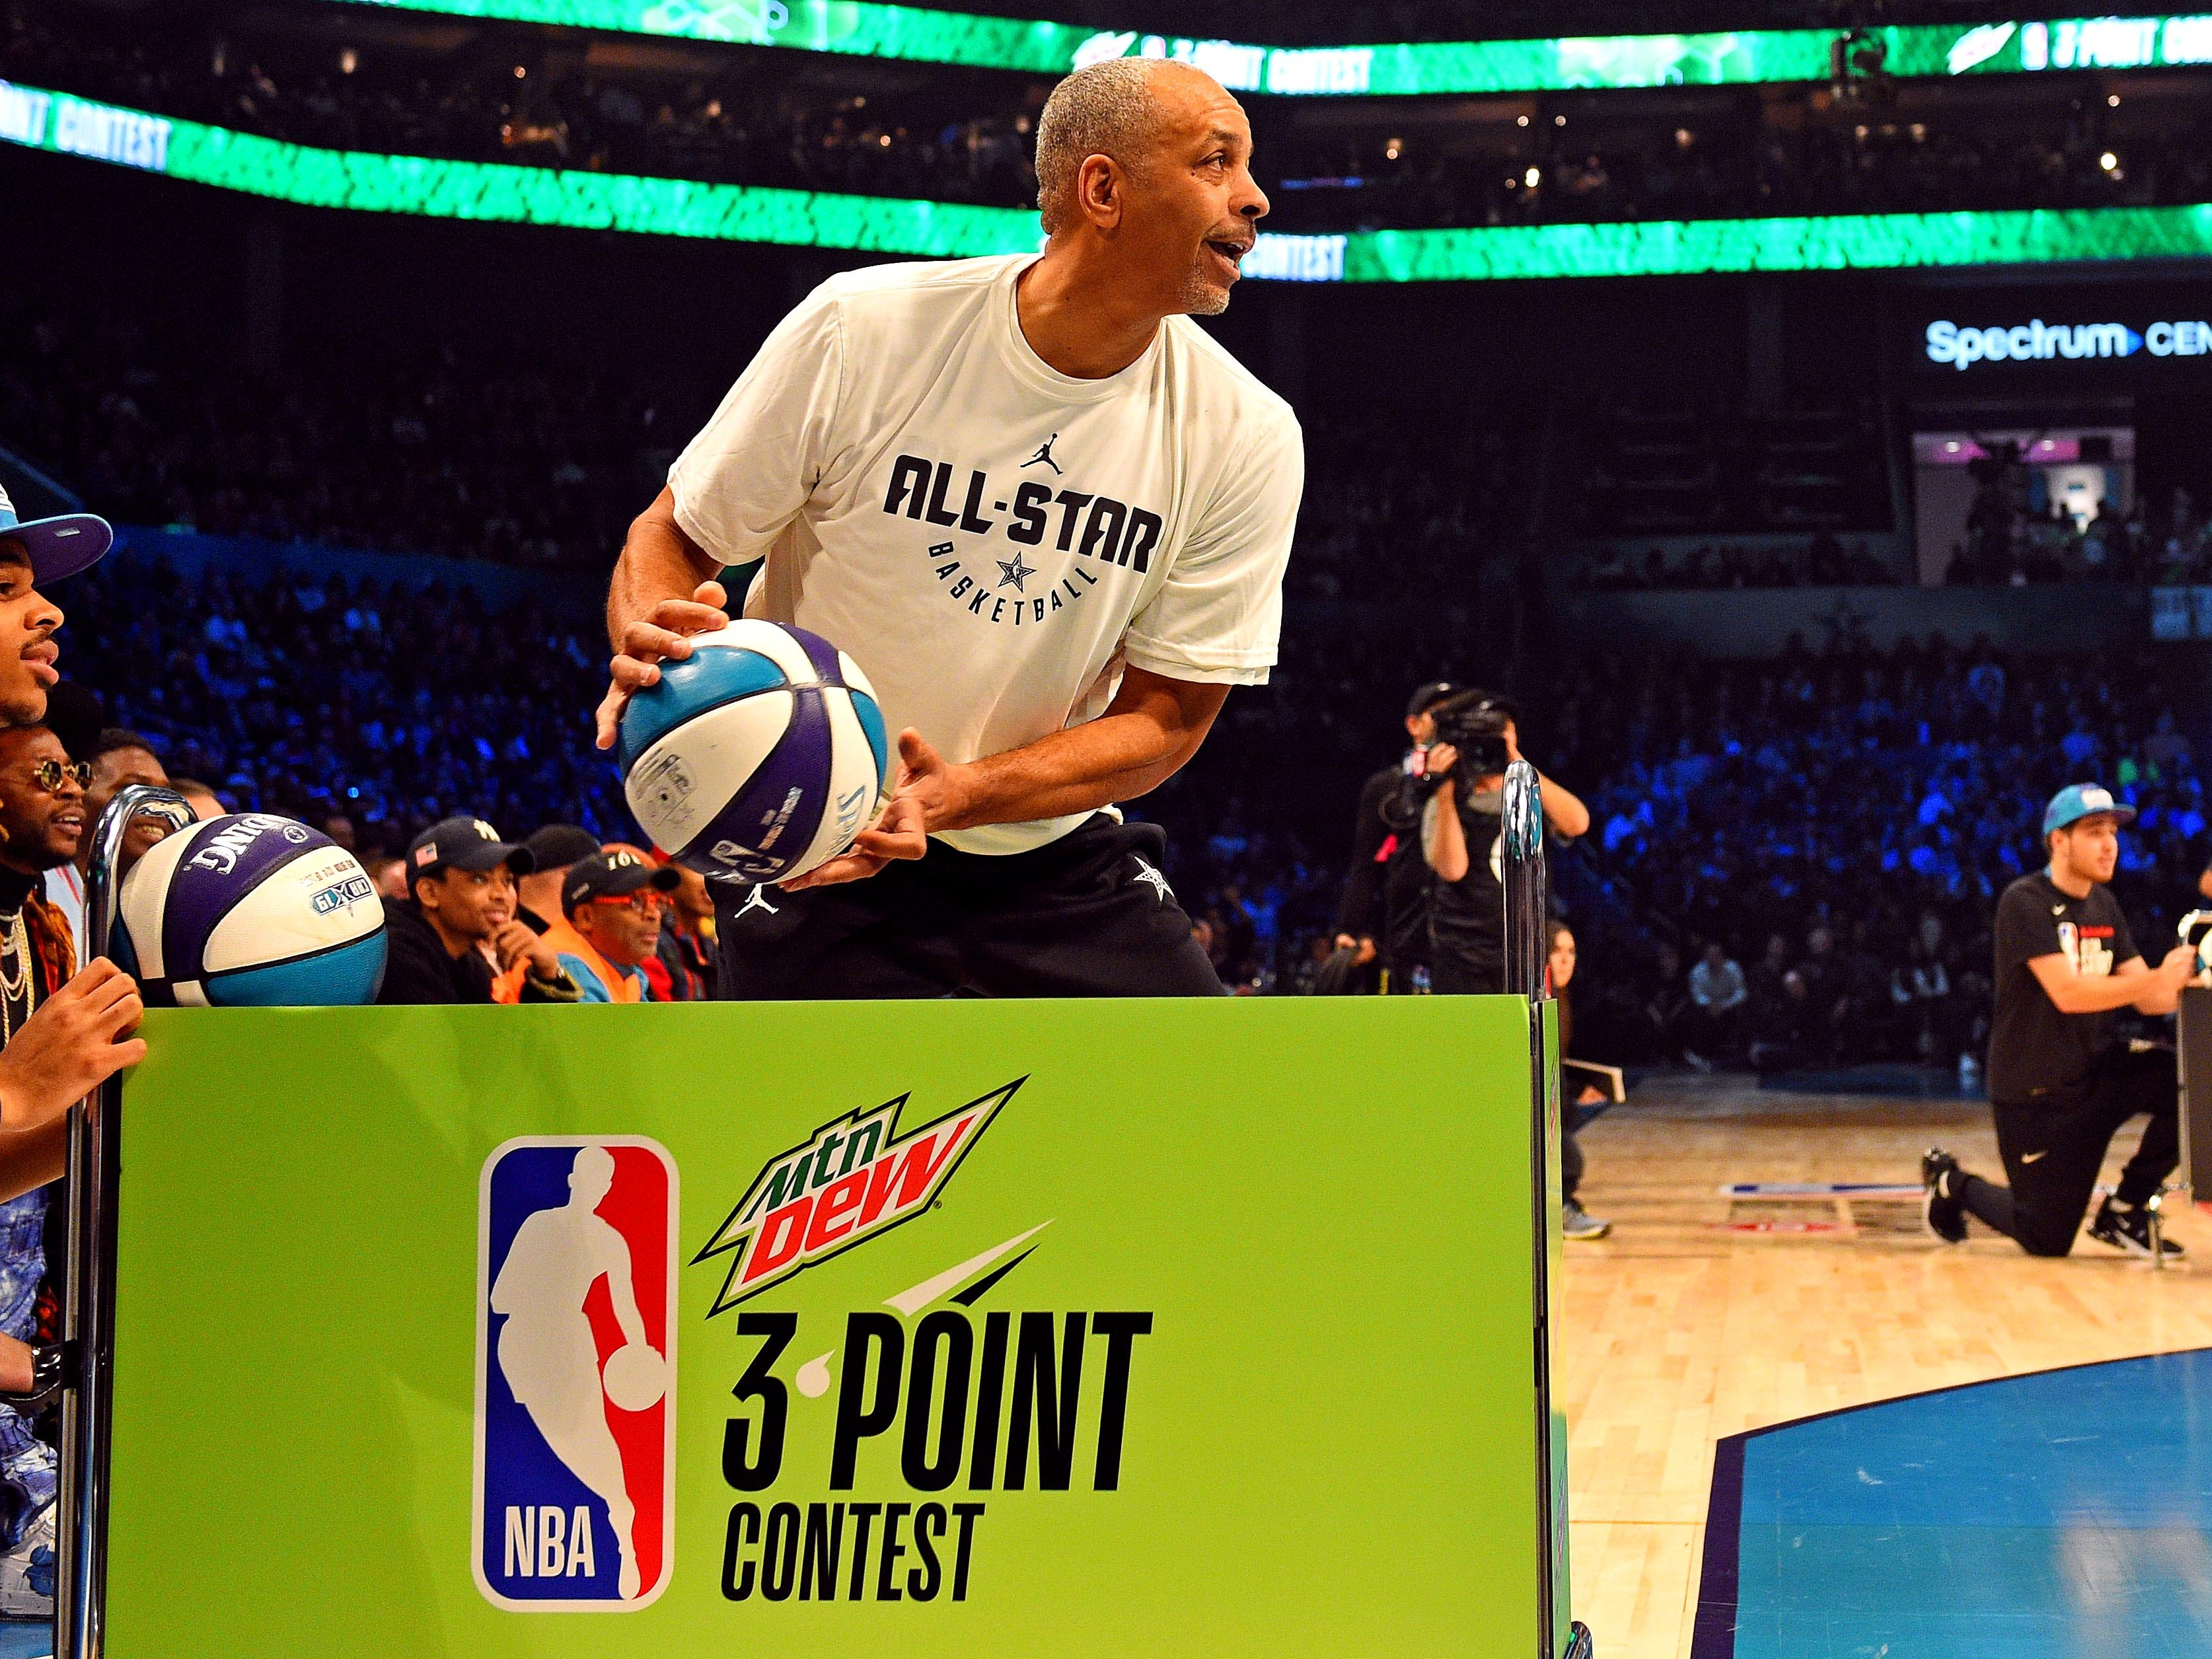 Dell Curry shoots for charity before the 3-Point Contest.